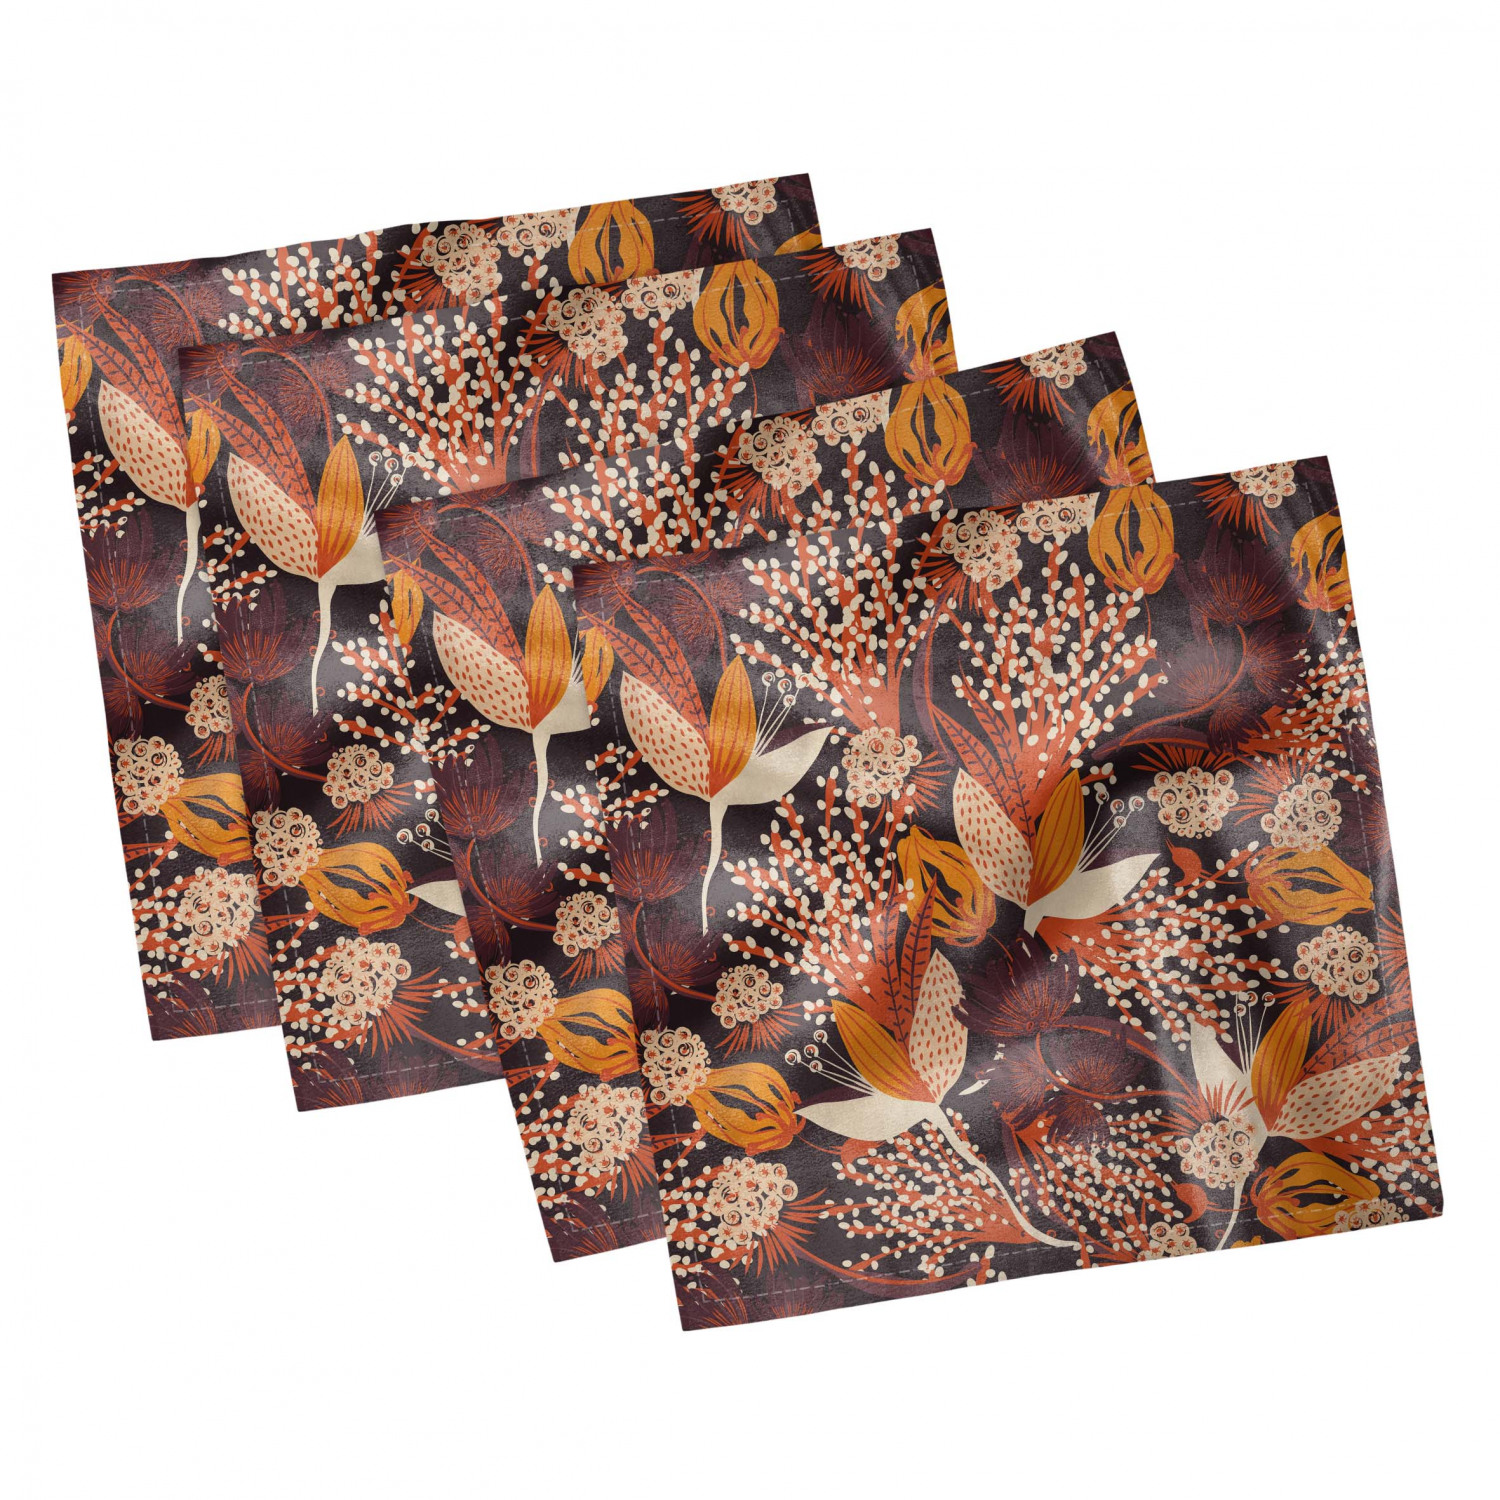 thumbnail 37 - Ambesonne-Autumn-Fall-Decorative-Satin-Napkins-Set-of-4-Party-Dinner-Fabric